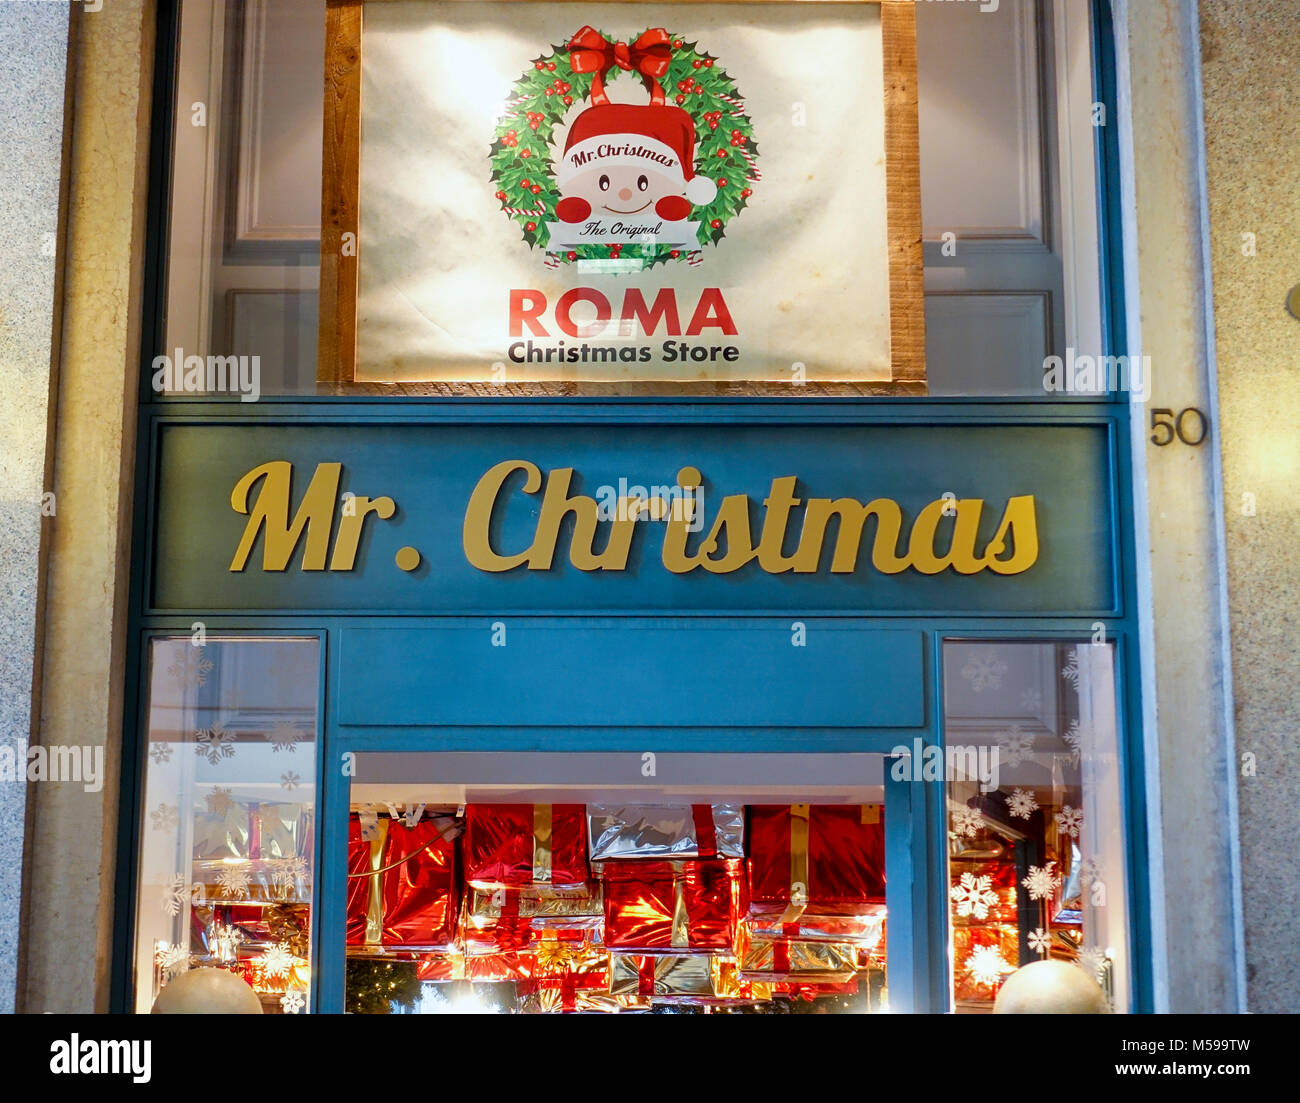 Mr Christmas an all year round Christmas outlet in Rome Italy Stock ...